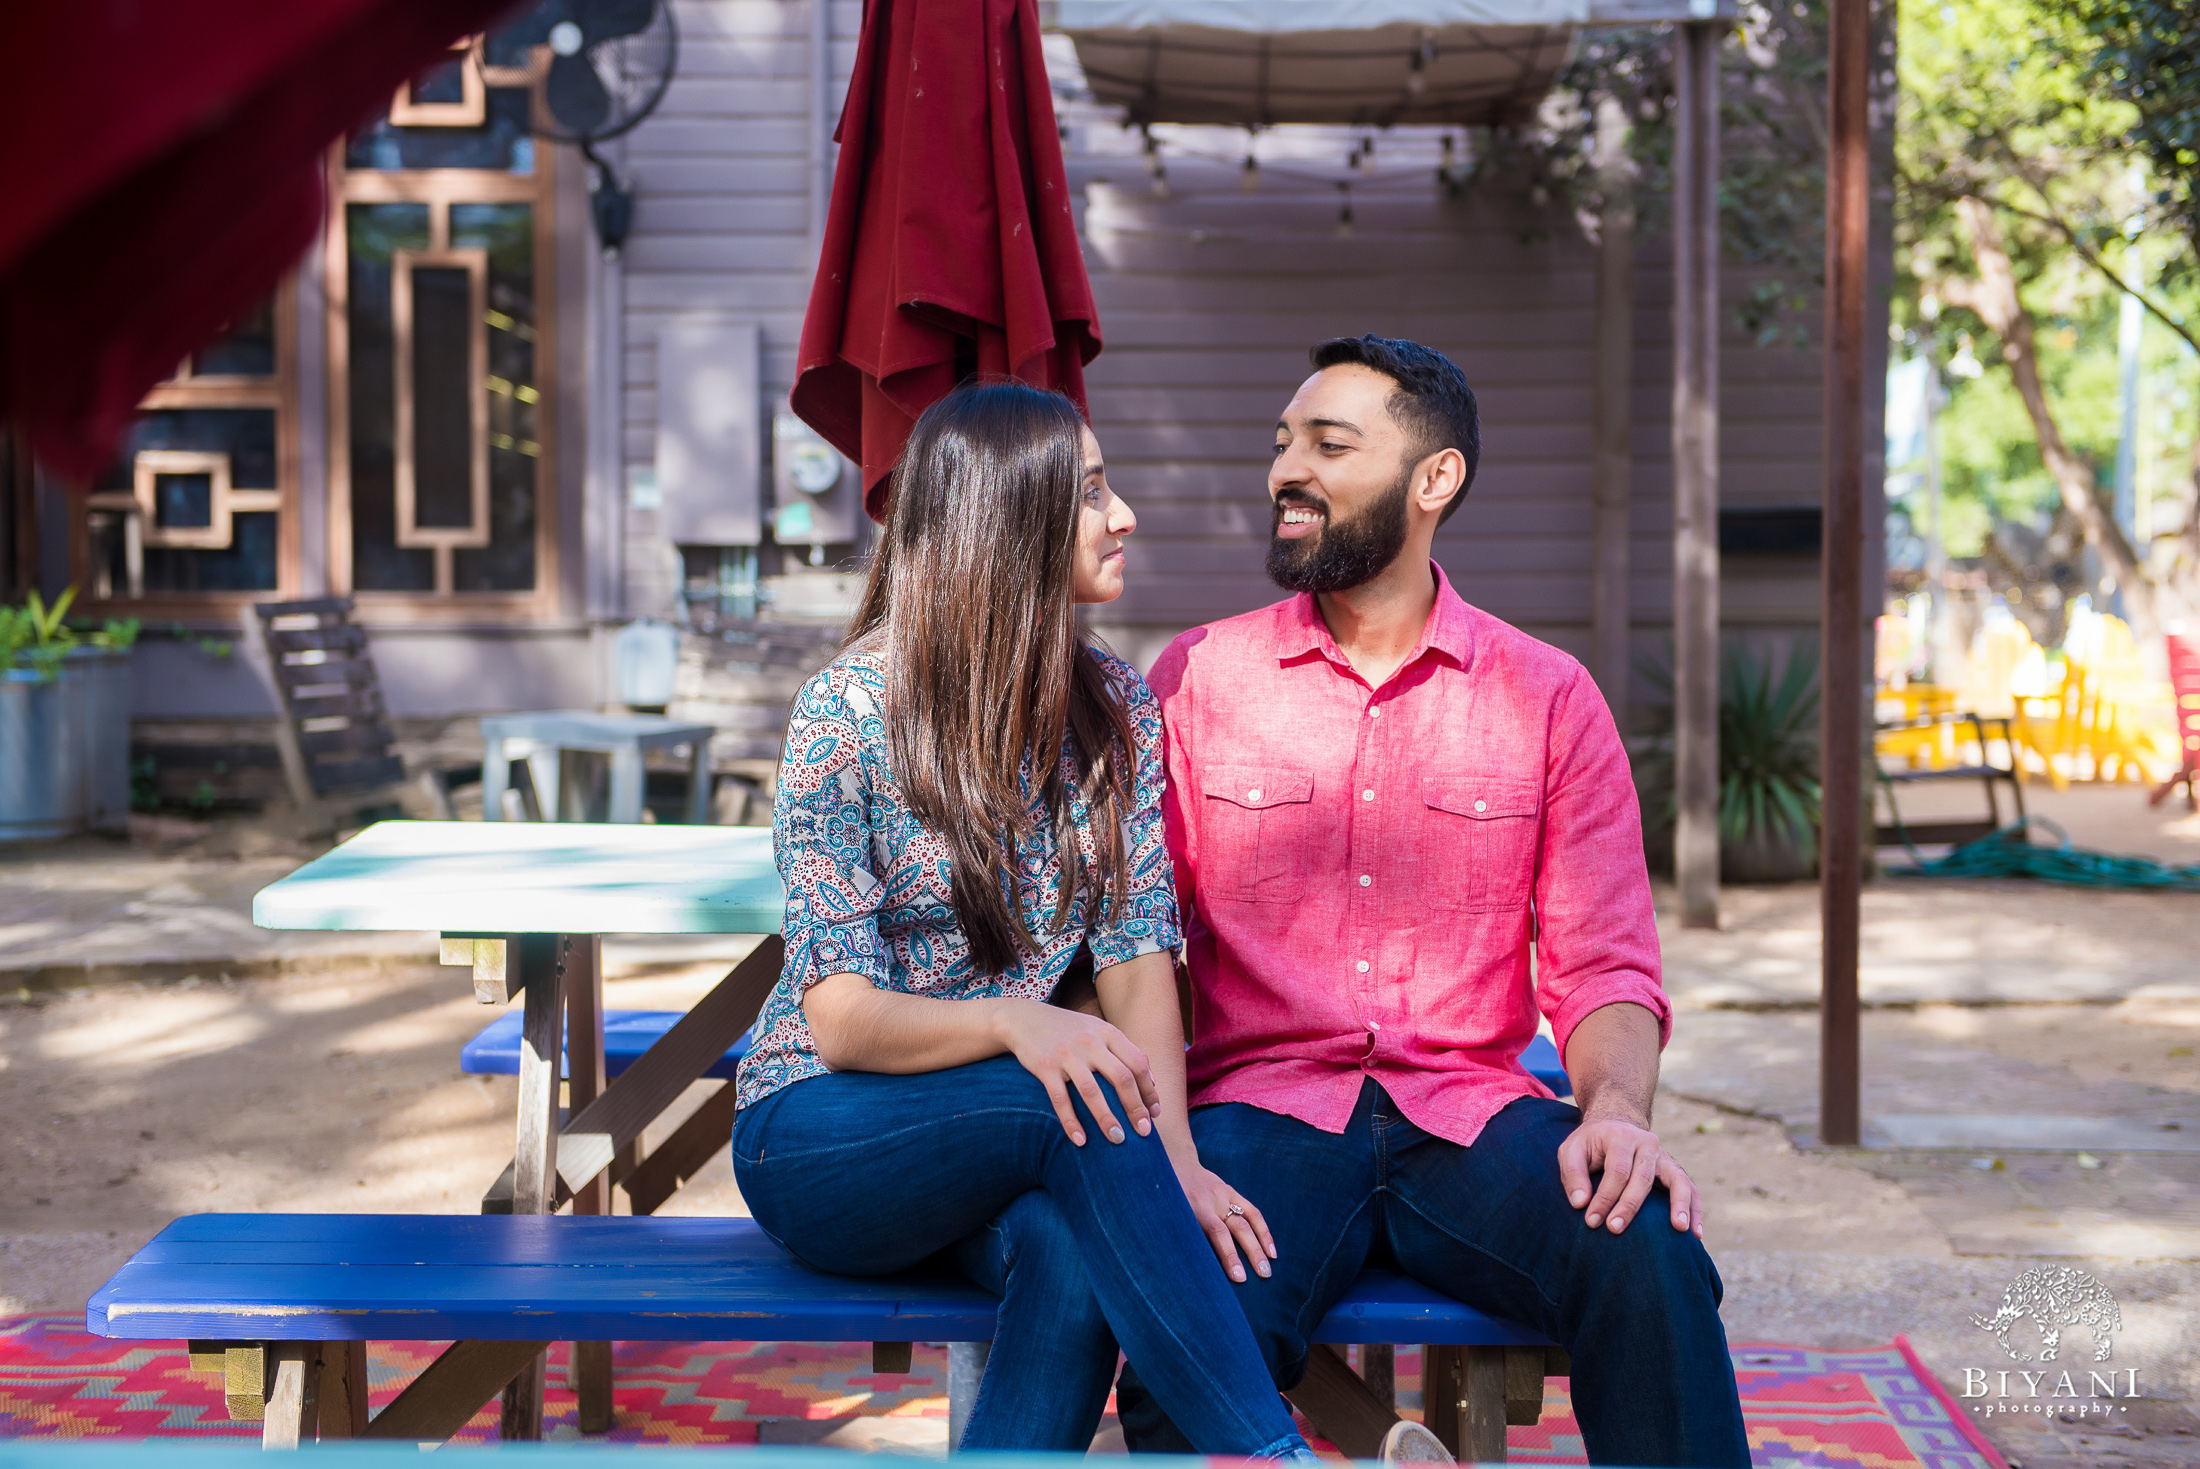 Indian couple sitting down on a picnic bench under a canopy during their engagement photo shoot in South Congress Austin, Tx. on a sunny day